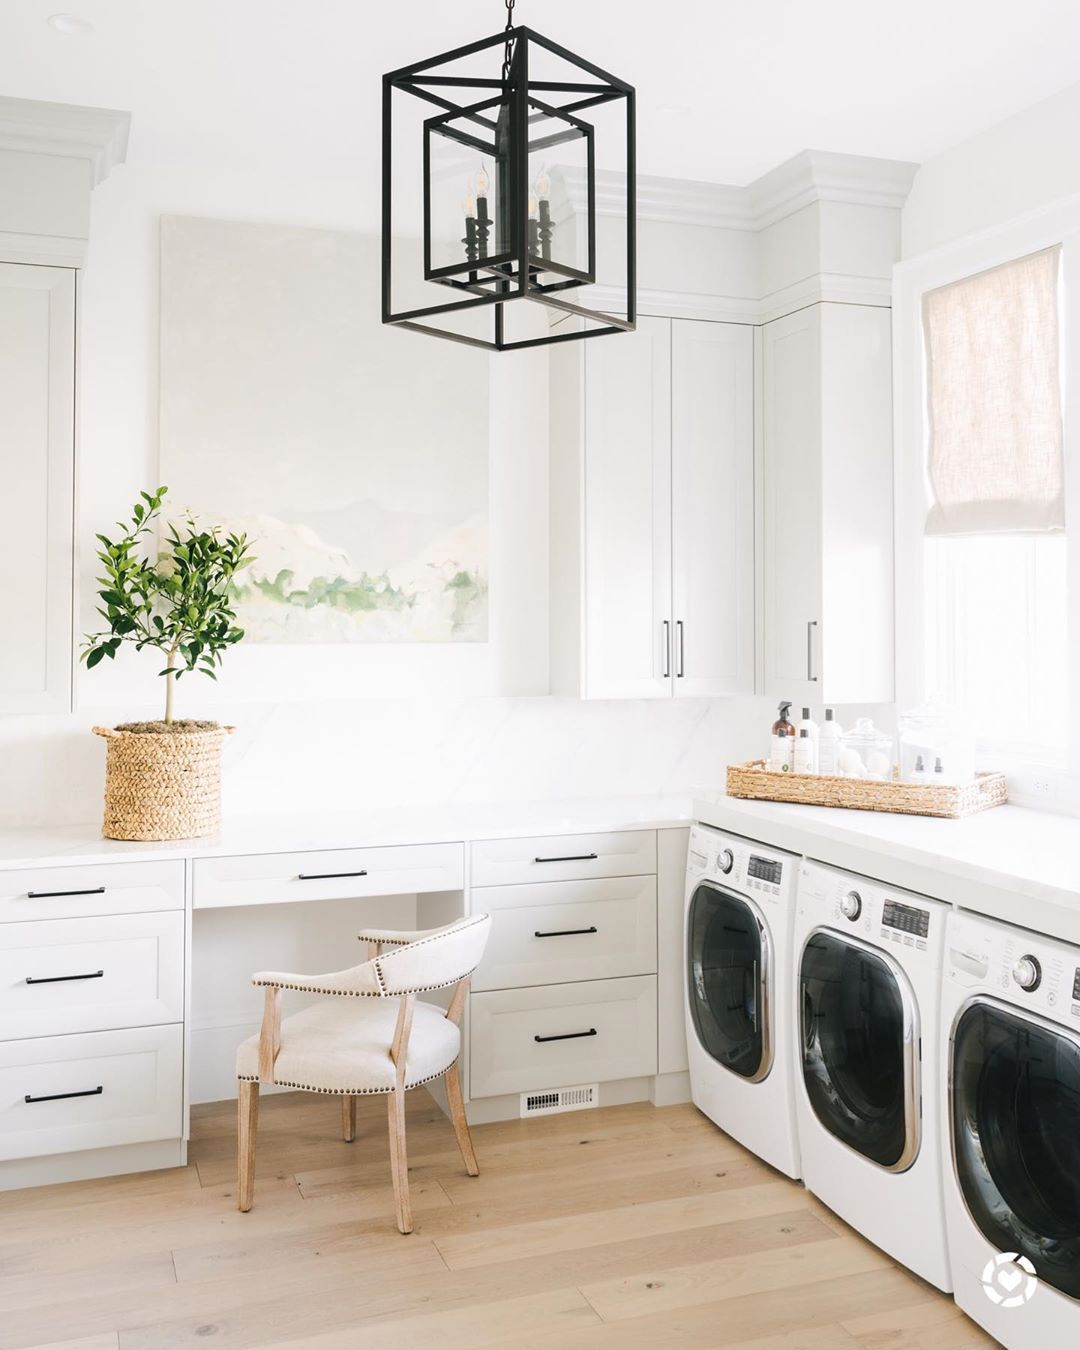 Design Your Own Laundry Room: 7 Things To Consider For The Perfect Laundry Room In 2020